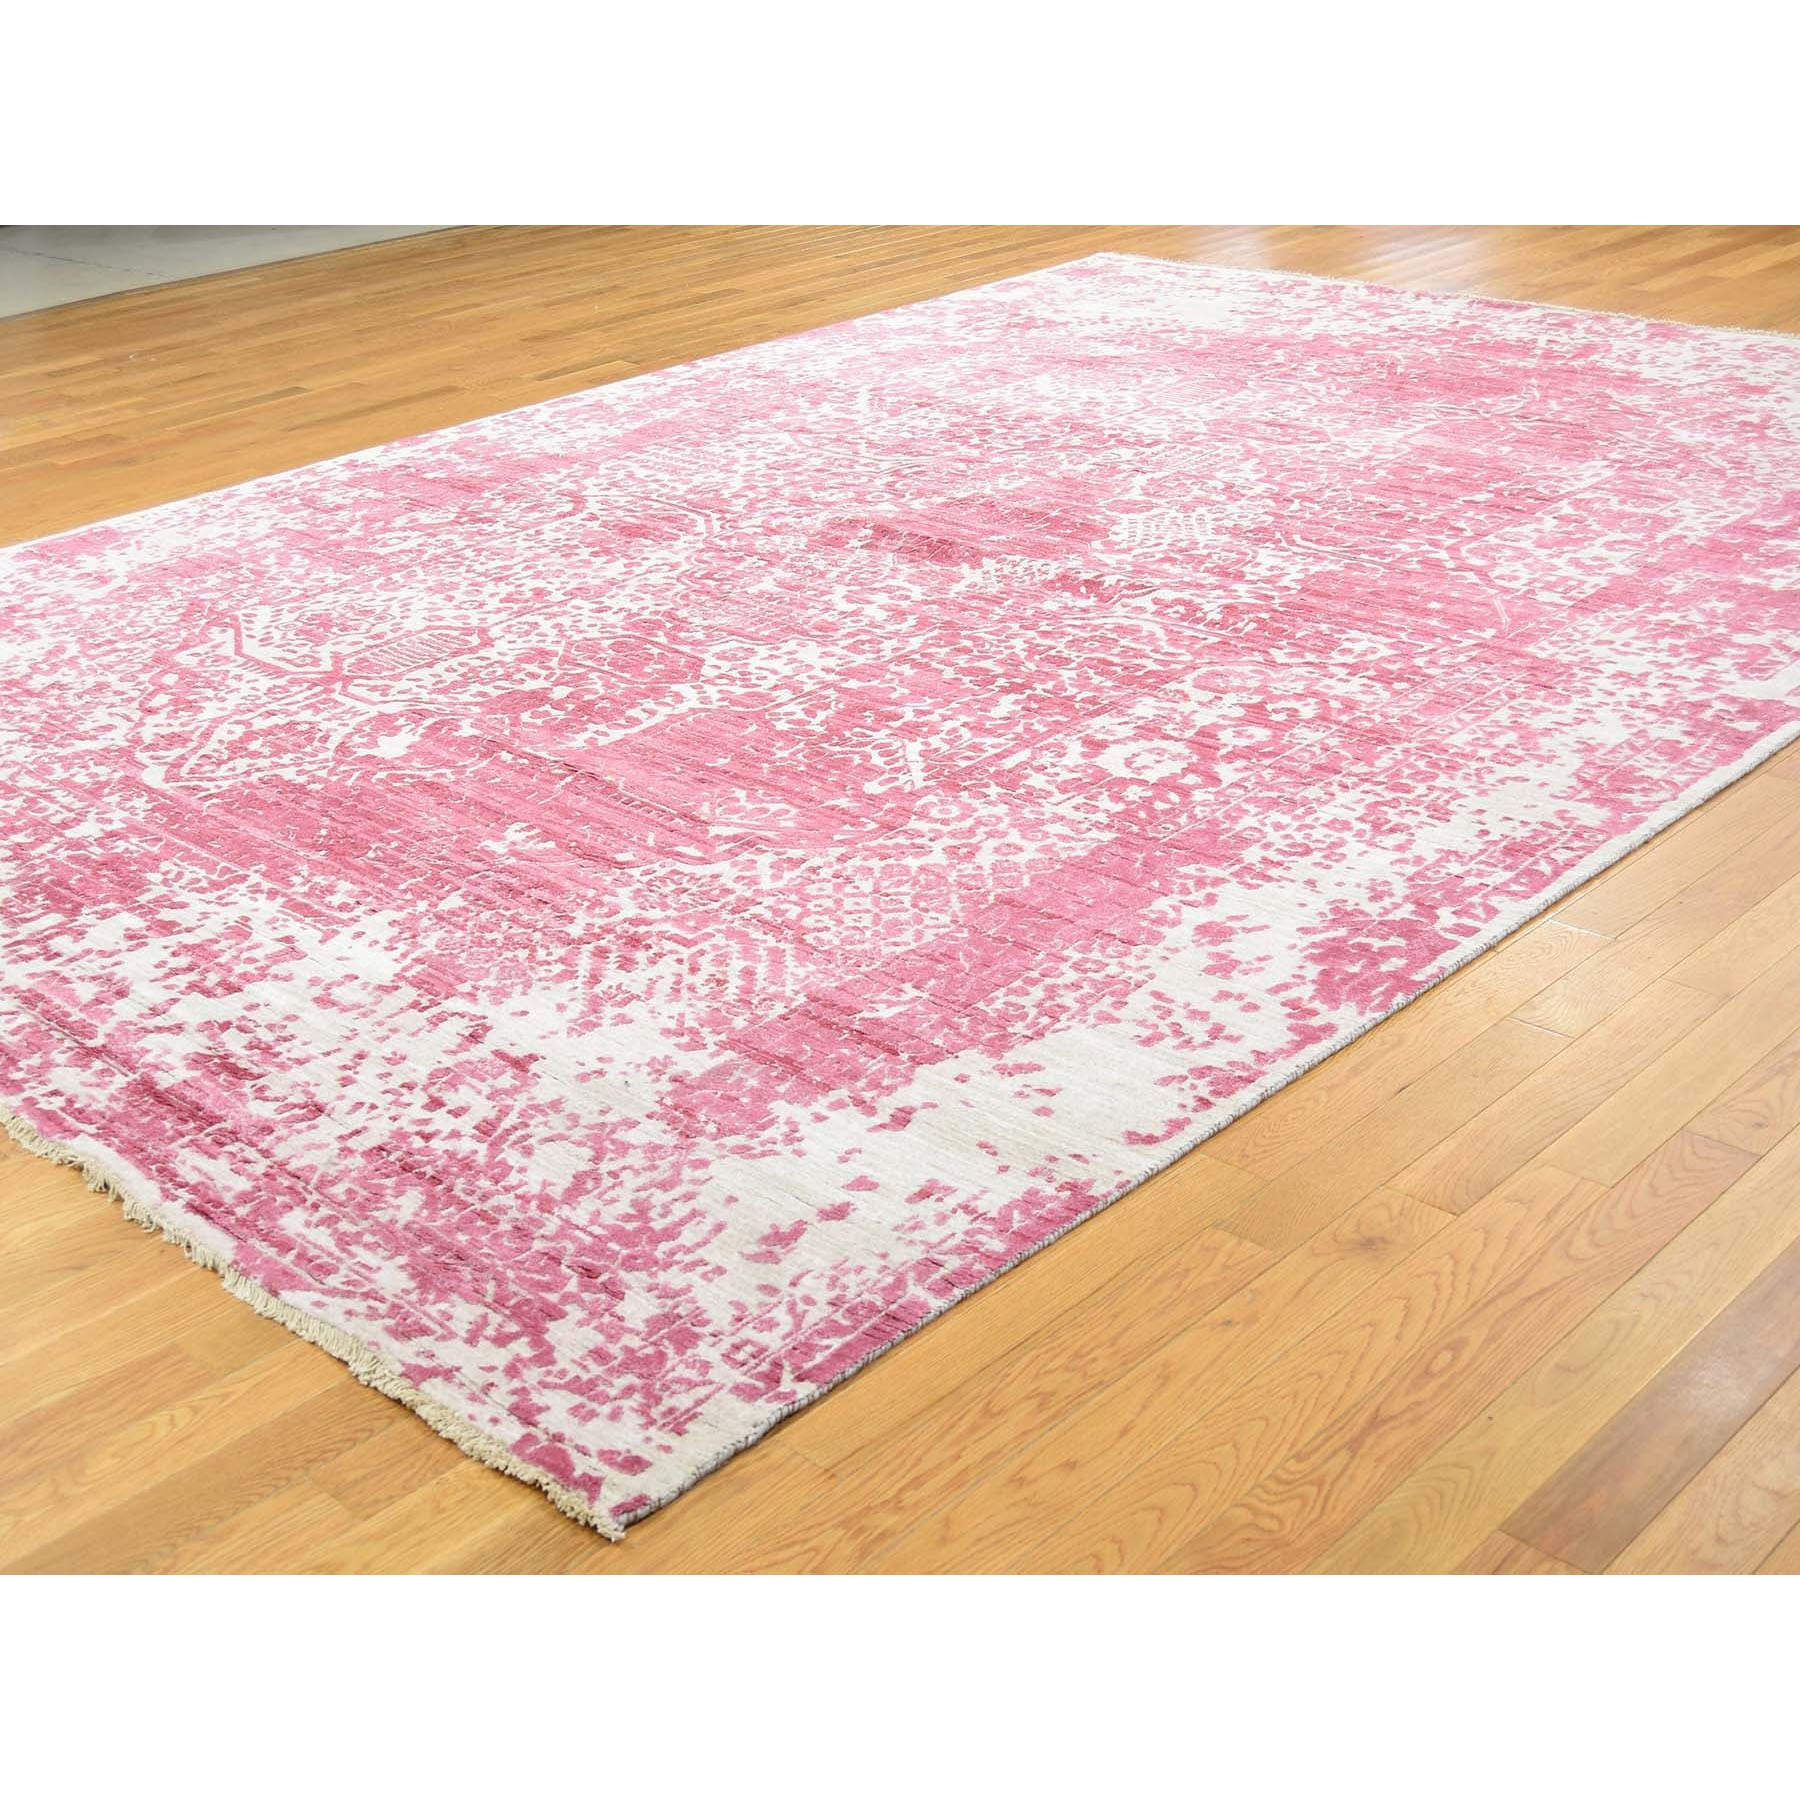 """8'10""""x11'9"""" Broken Persian Design Wool And Pure Silk Hand Knotted Oriental Rug"""